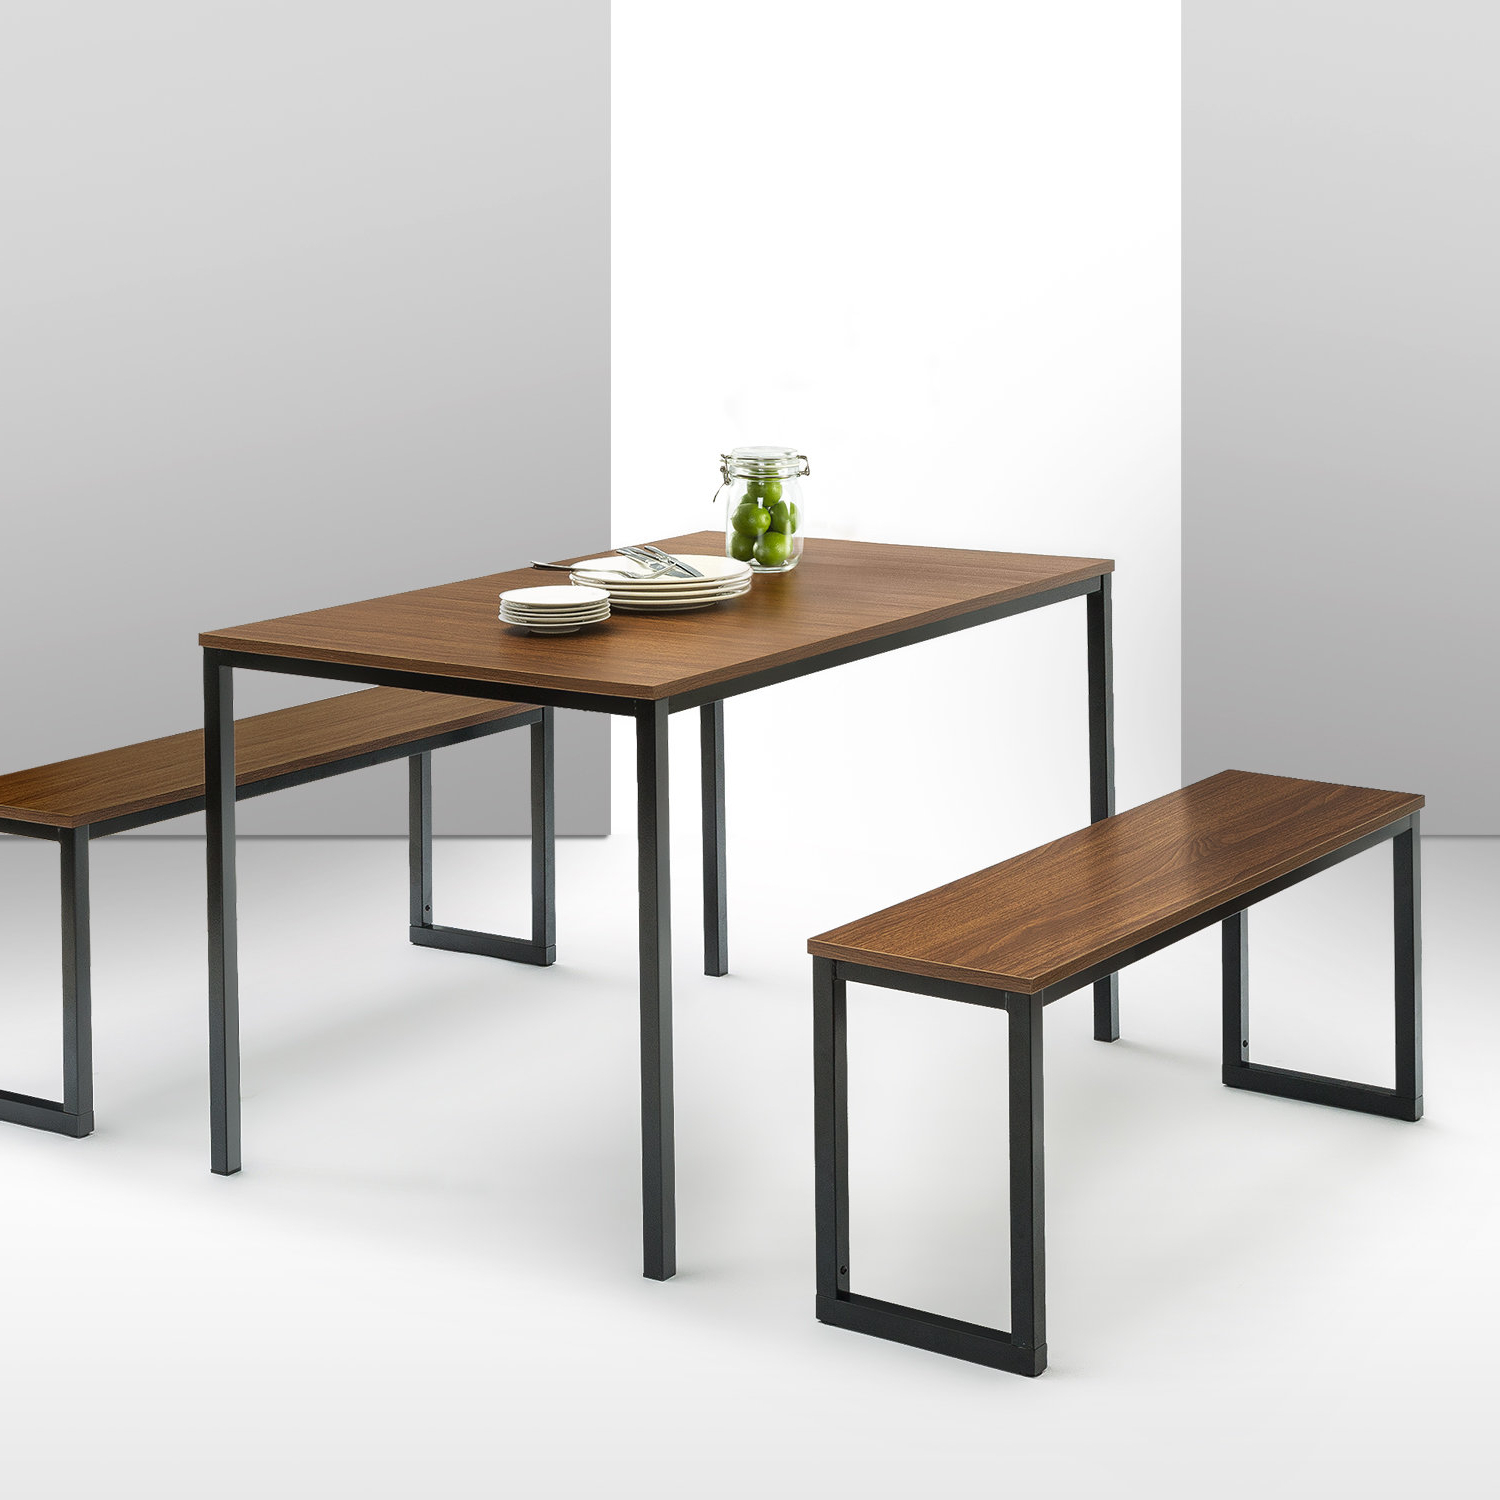 Famous Kerley 4 Piece Dining Sets Inside Frida 3 Piece Dining Table Set & Reviews (View 6 of 25)